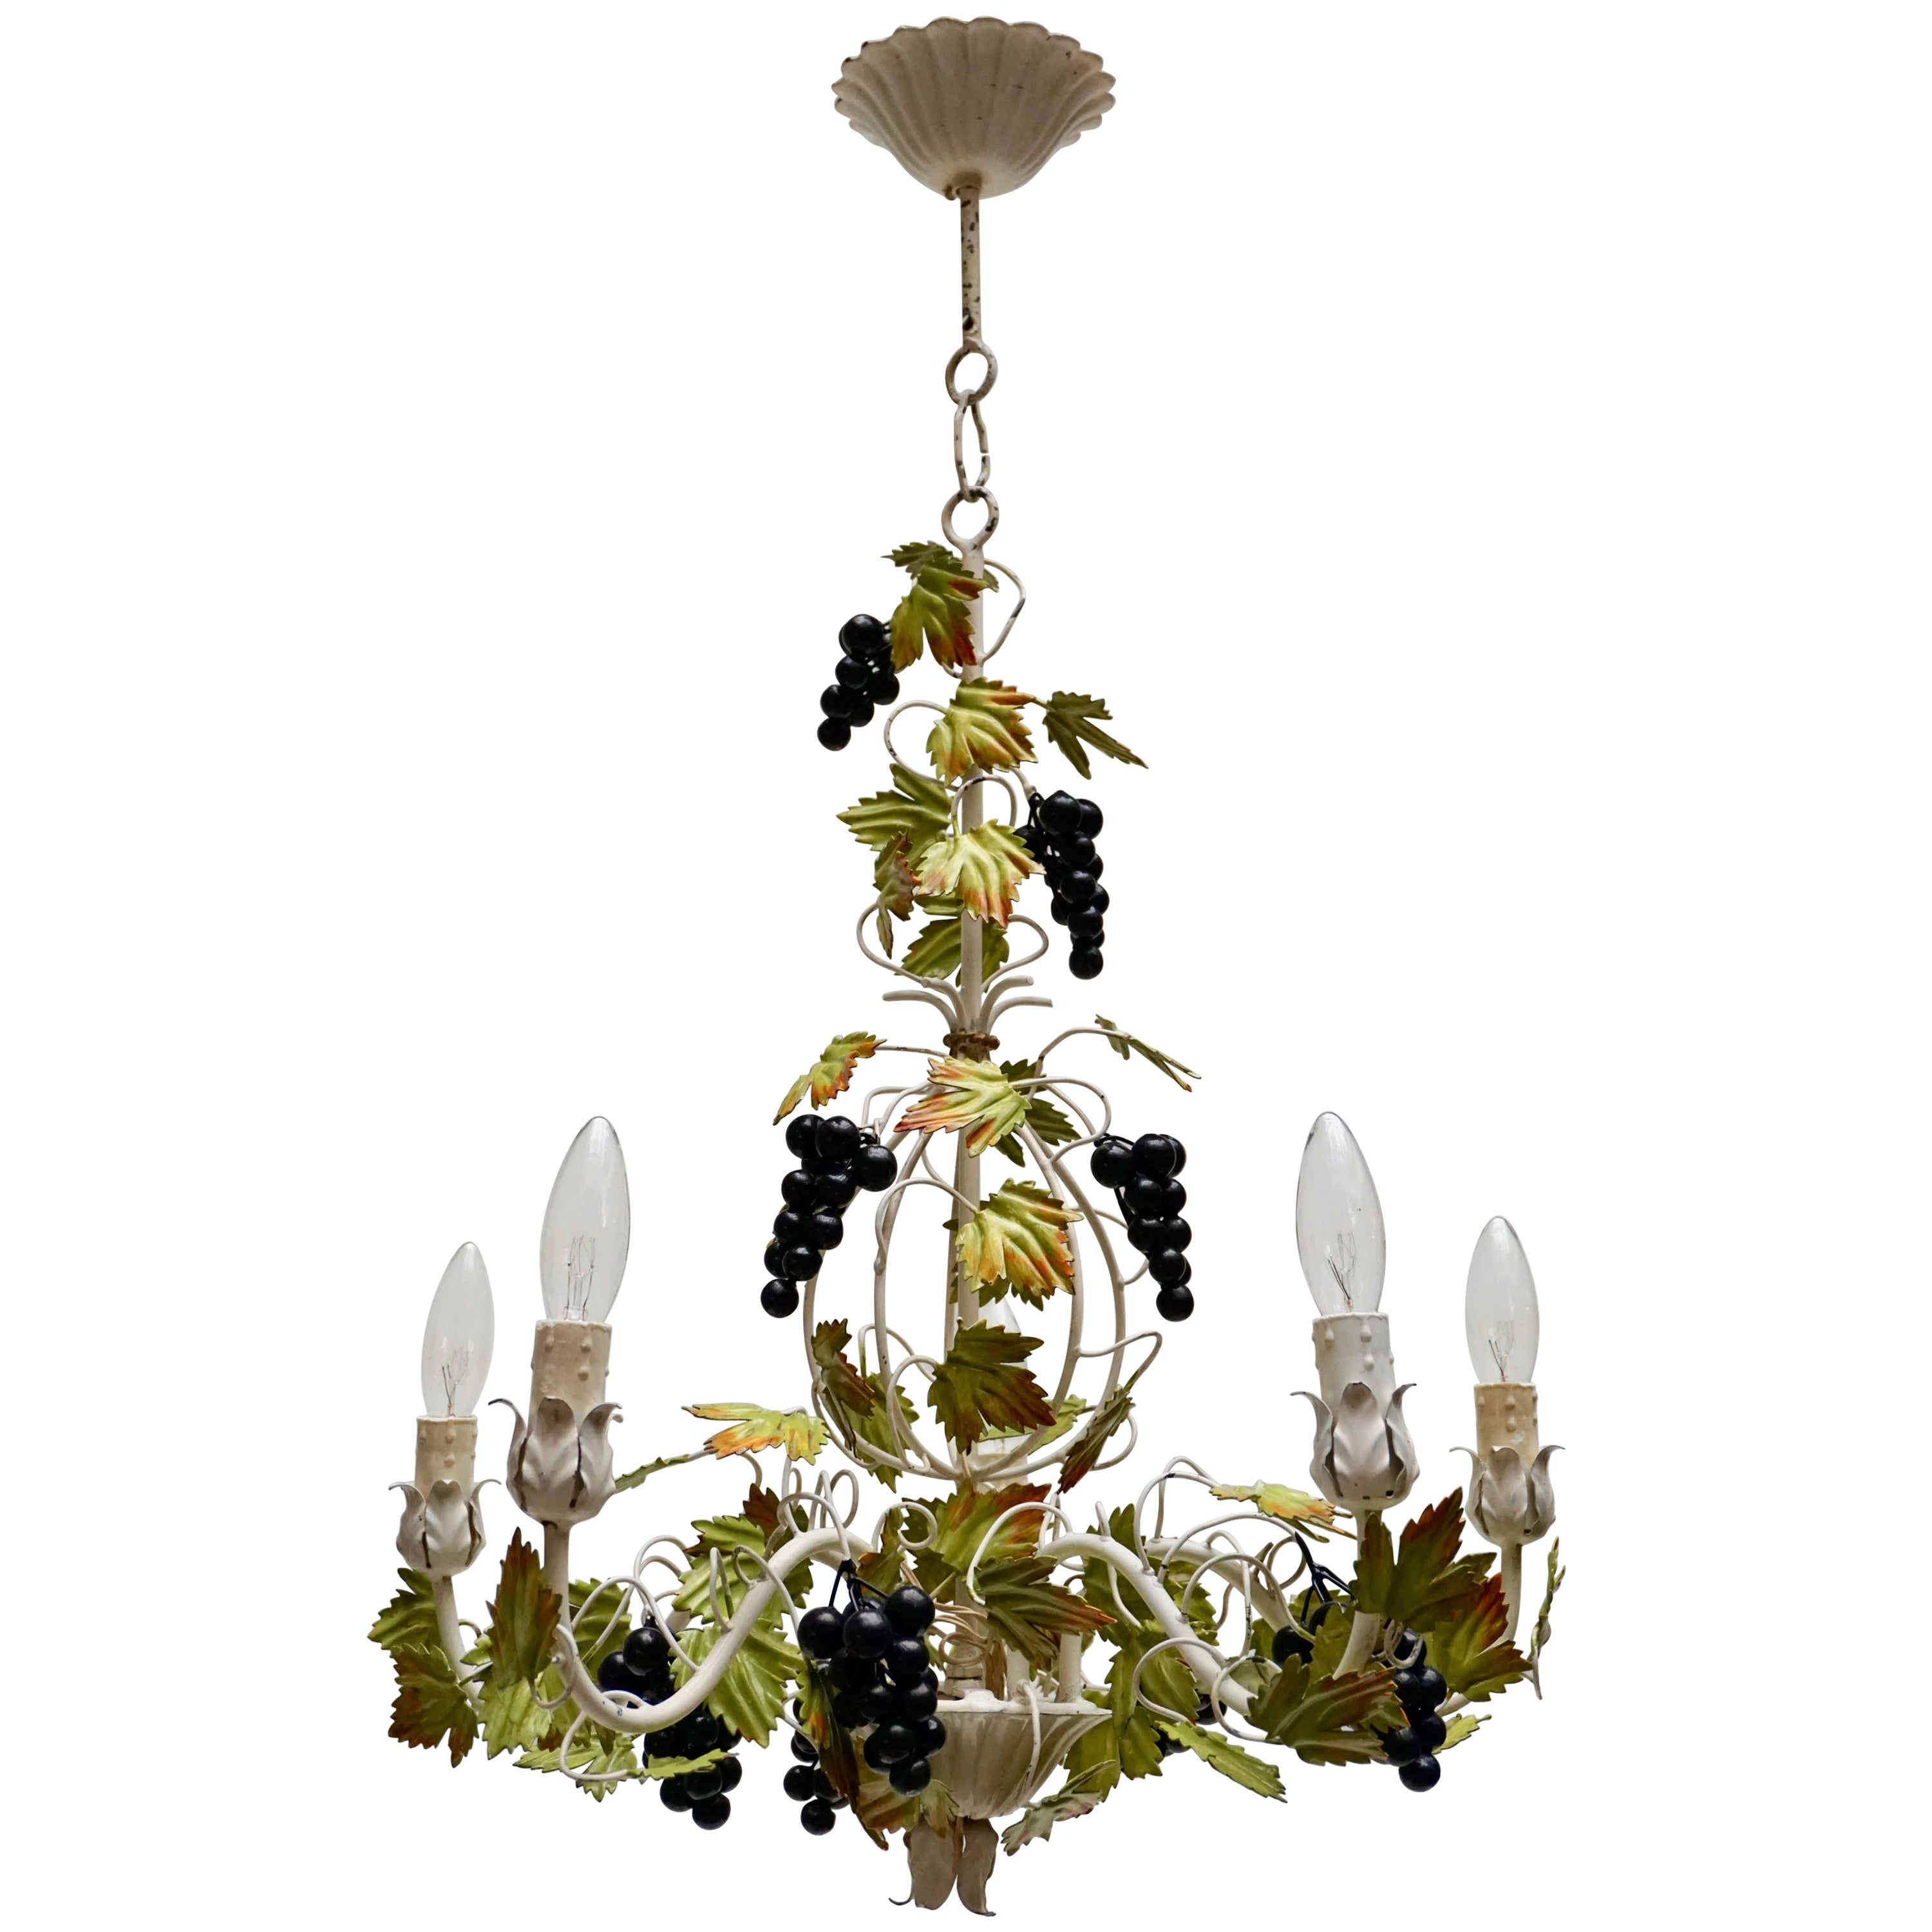 Metal Painted Chandelier with Bunches of Grapes